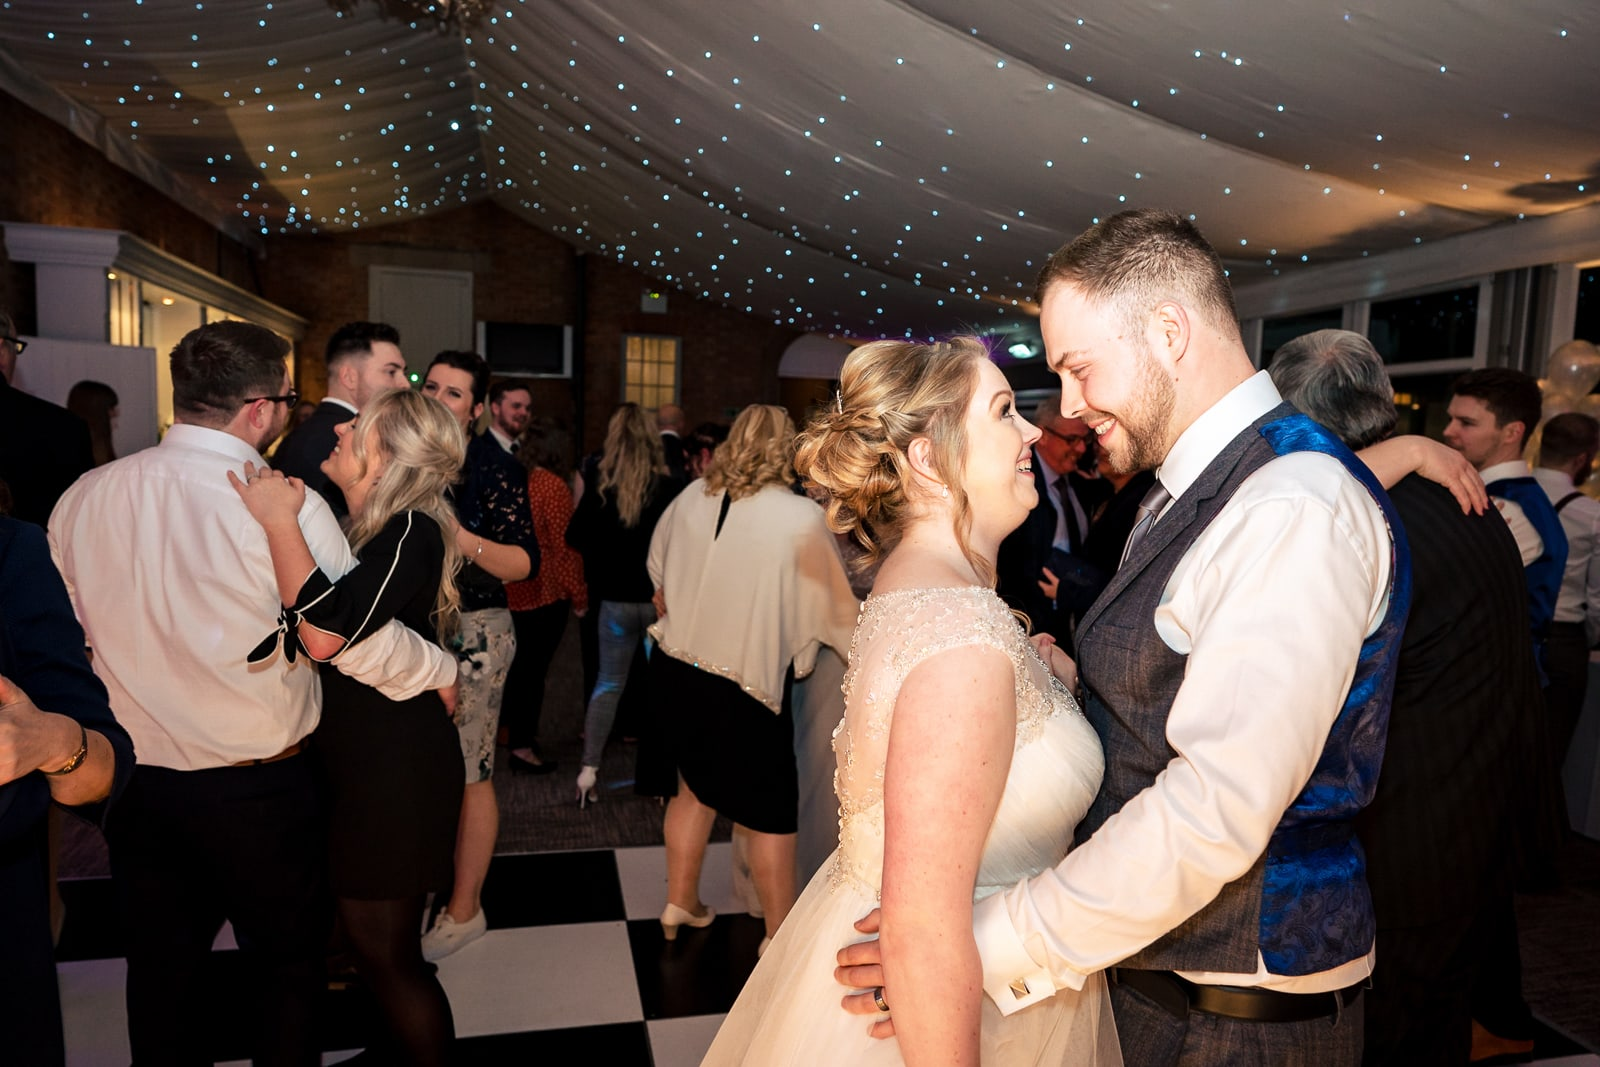 Norwood Park Wedding Photography - Wedding first dance at disco